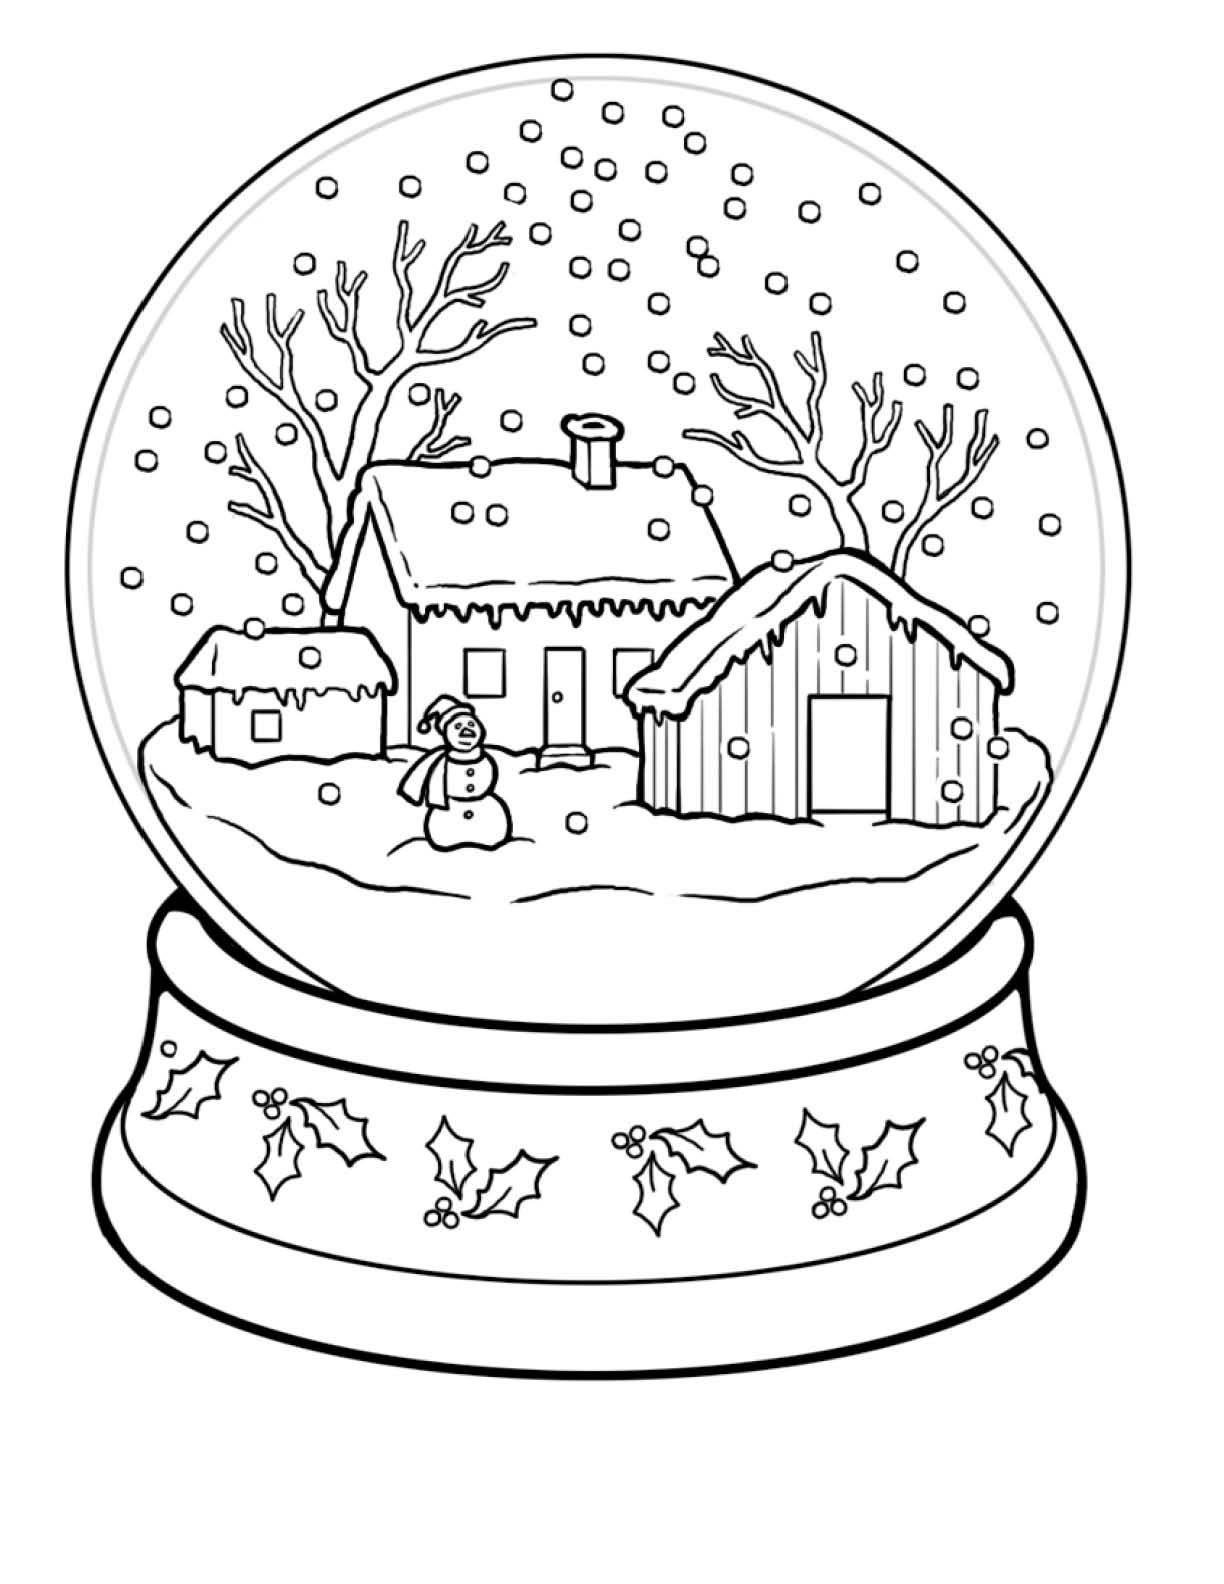 Coloring Pages Winter Scenes - High Quality Coloring Pages